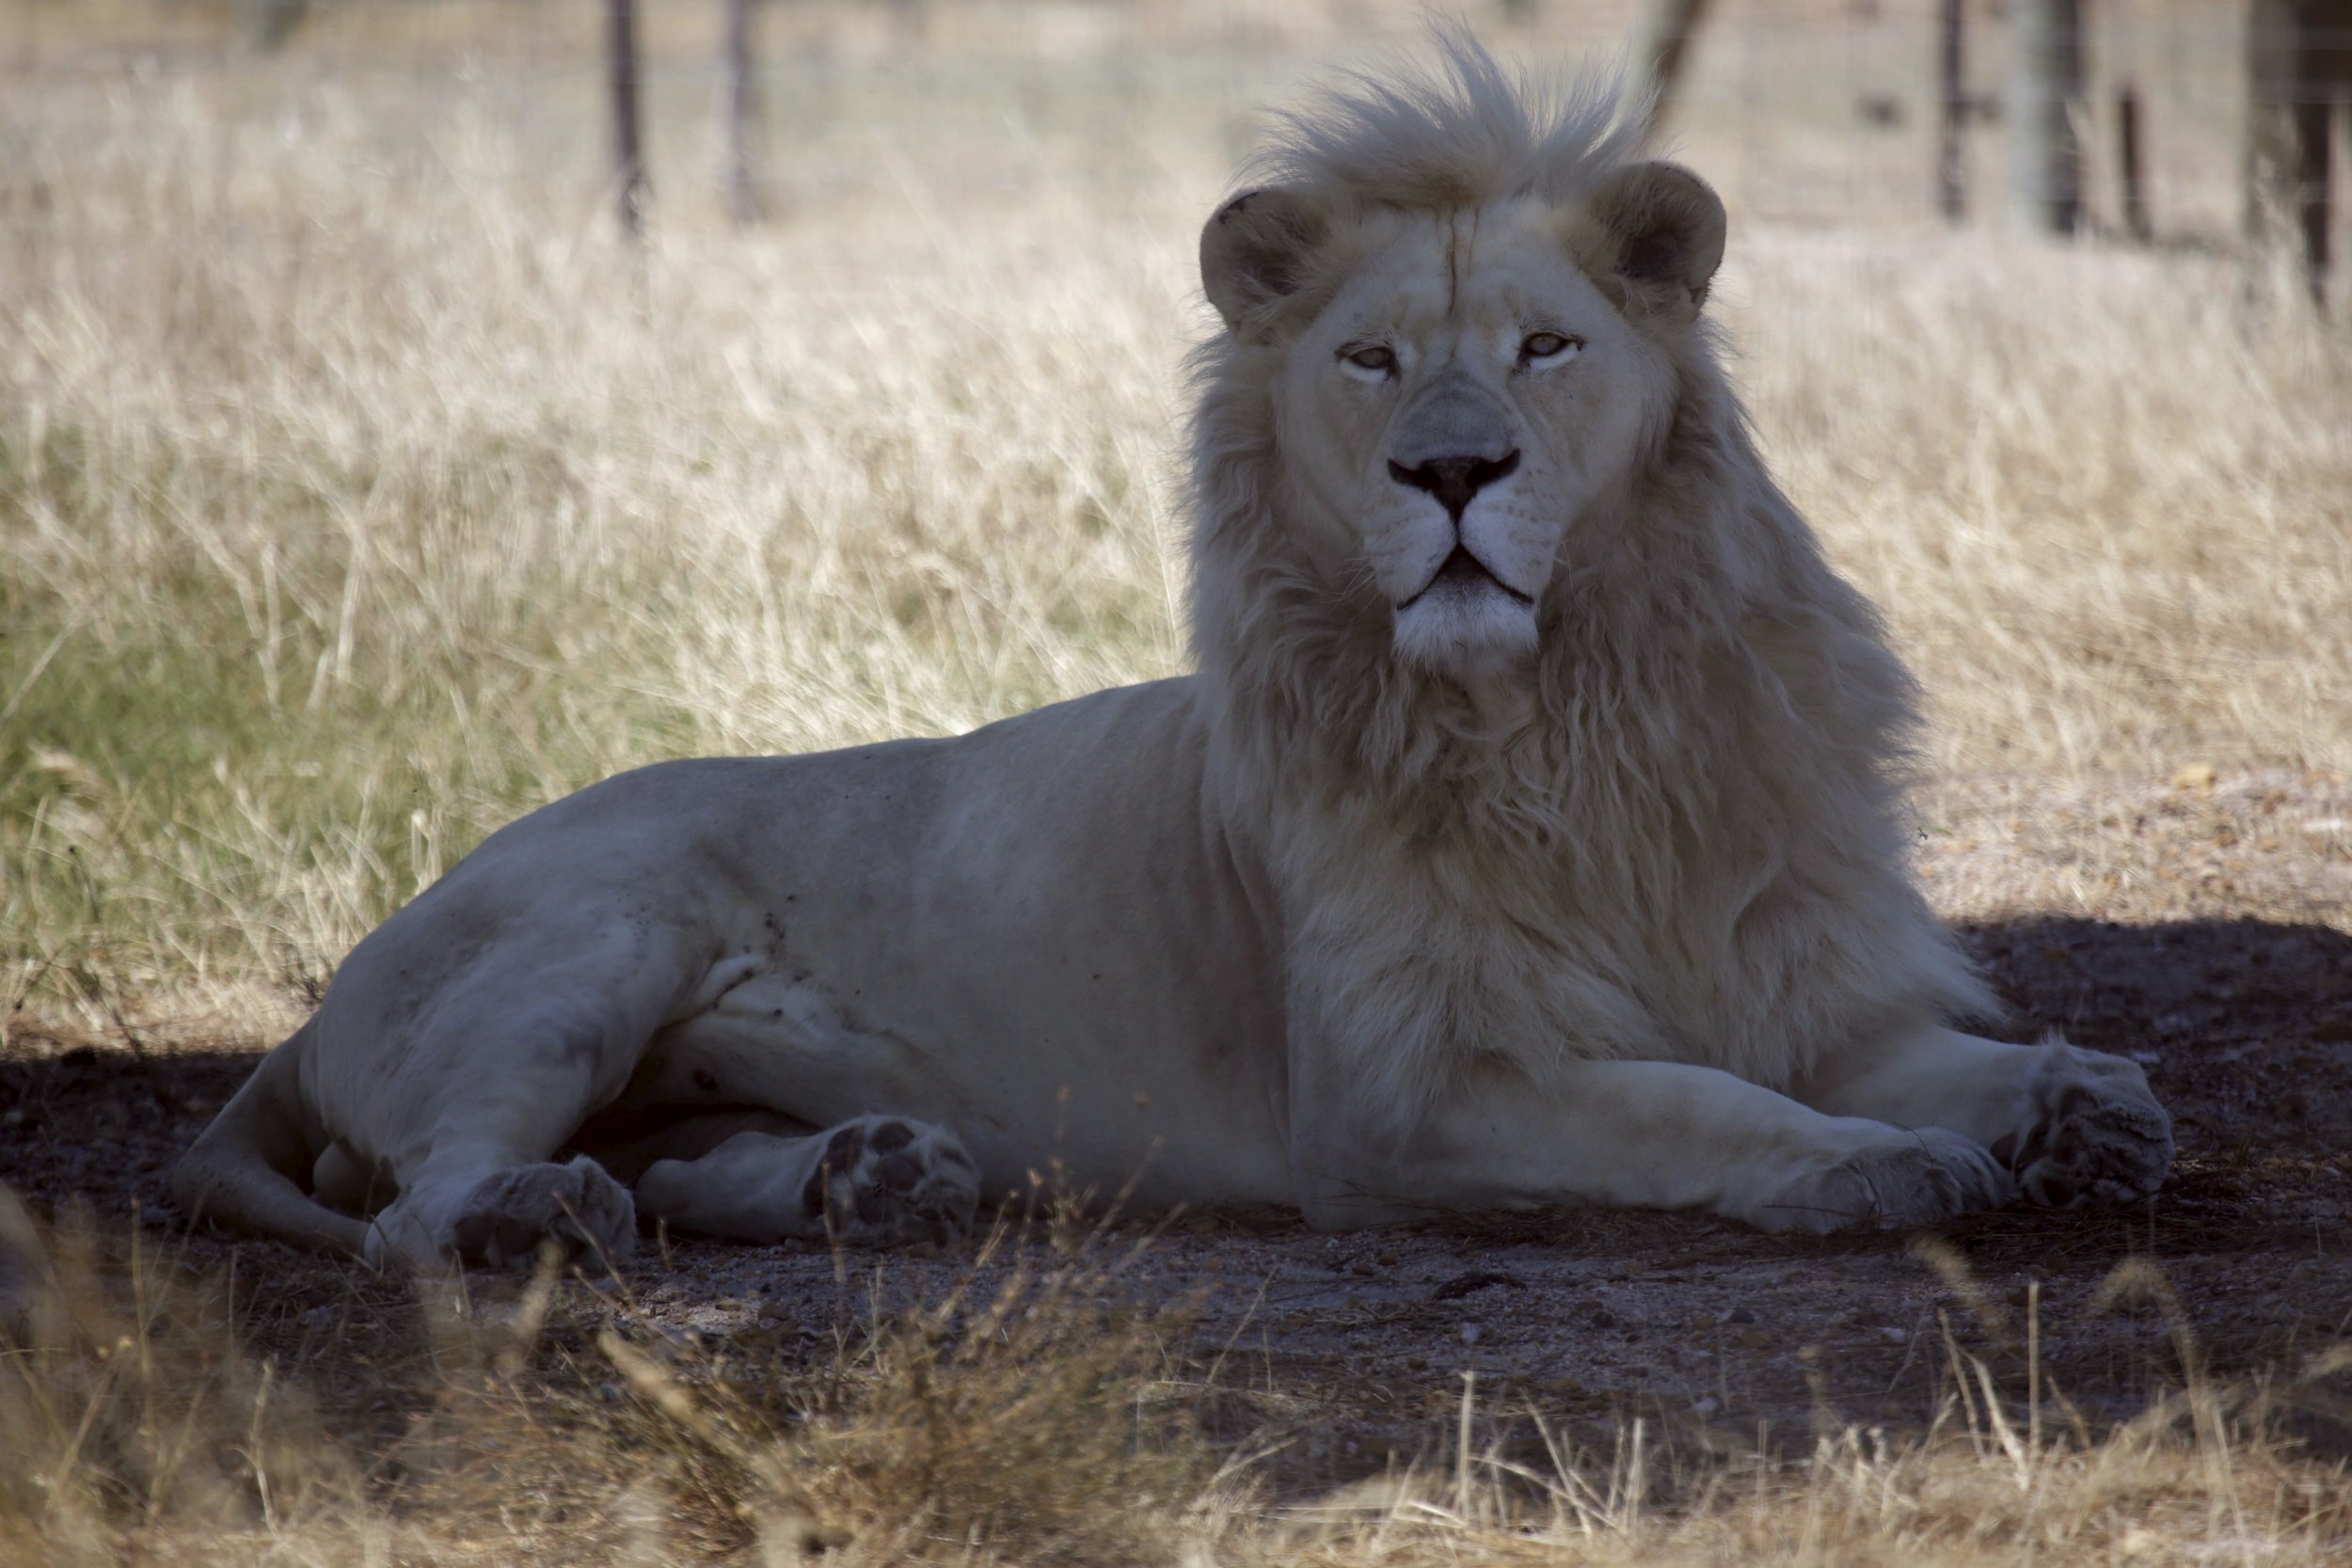 Lions in South Africa kill and eat suspected poacher, leaving only 'his head and some remains'